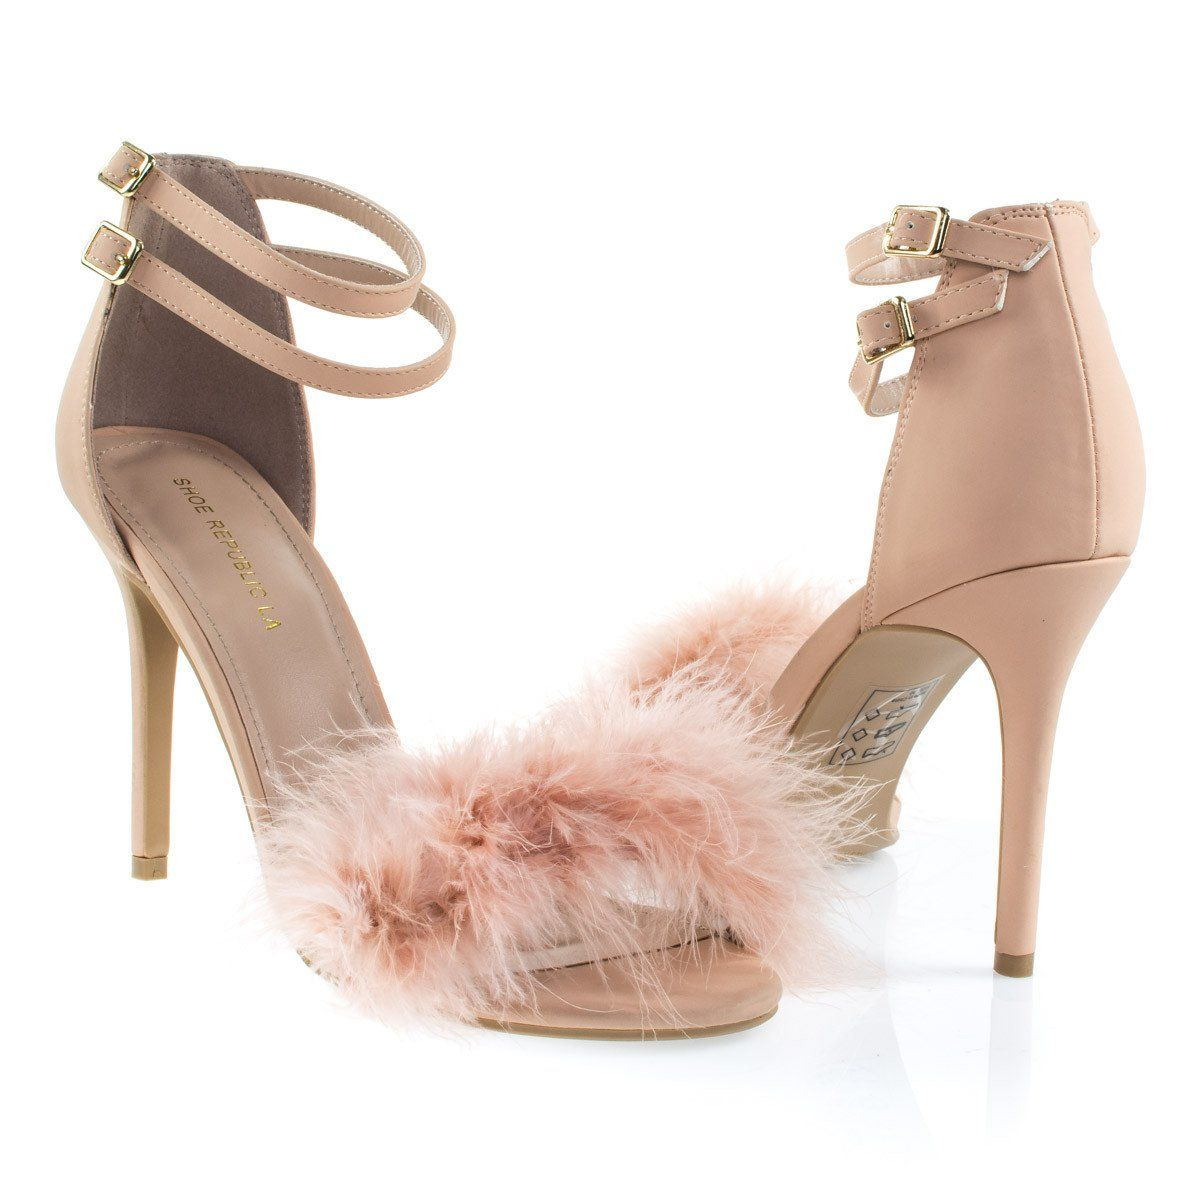 68c7ea50663 About This Shoes  These open toe dress sandal features a fluffy faux fur  toe strap